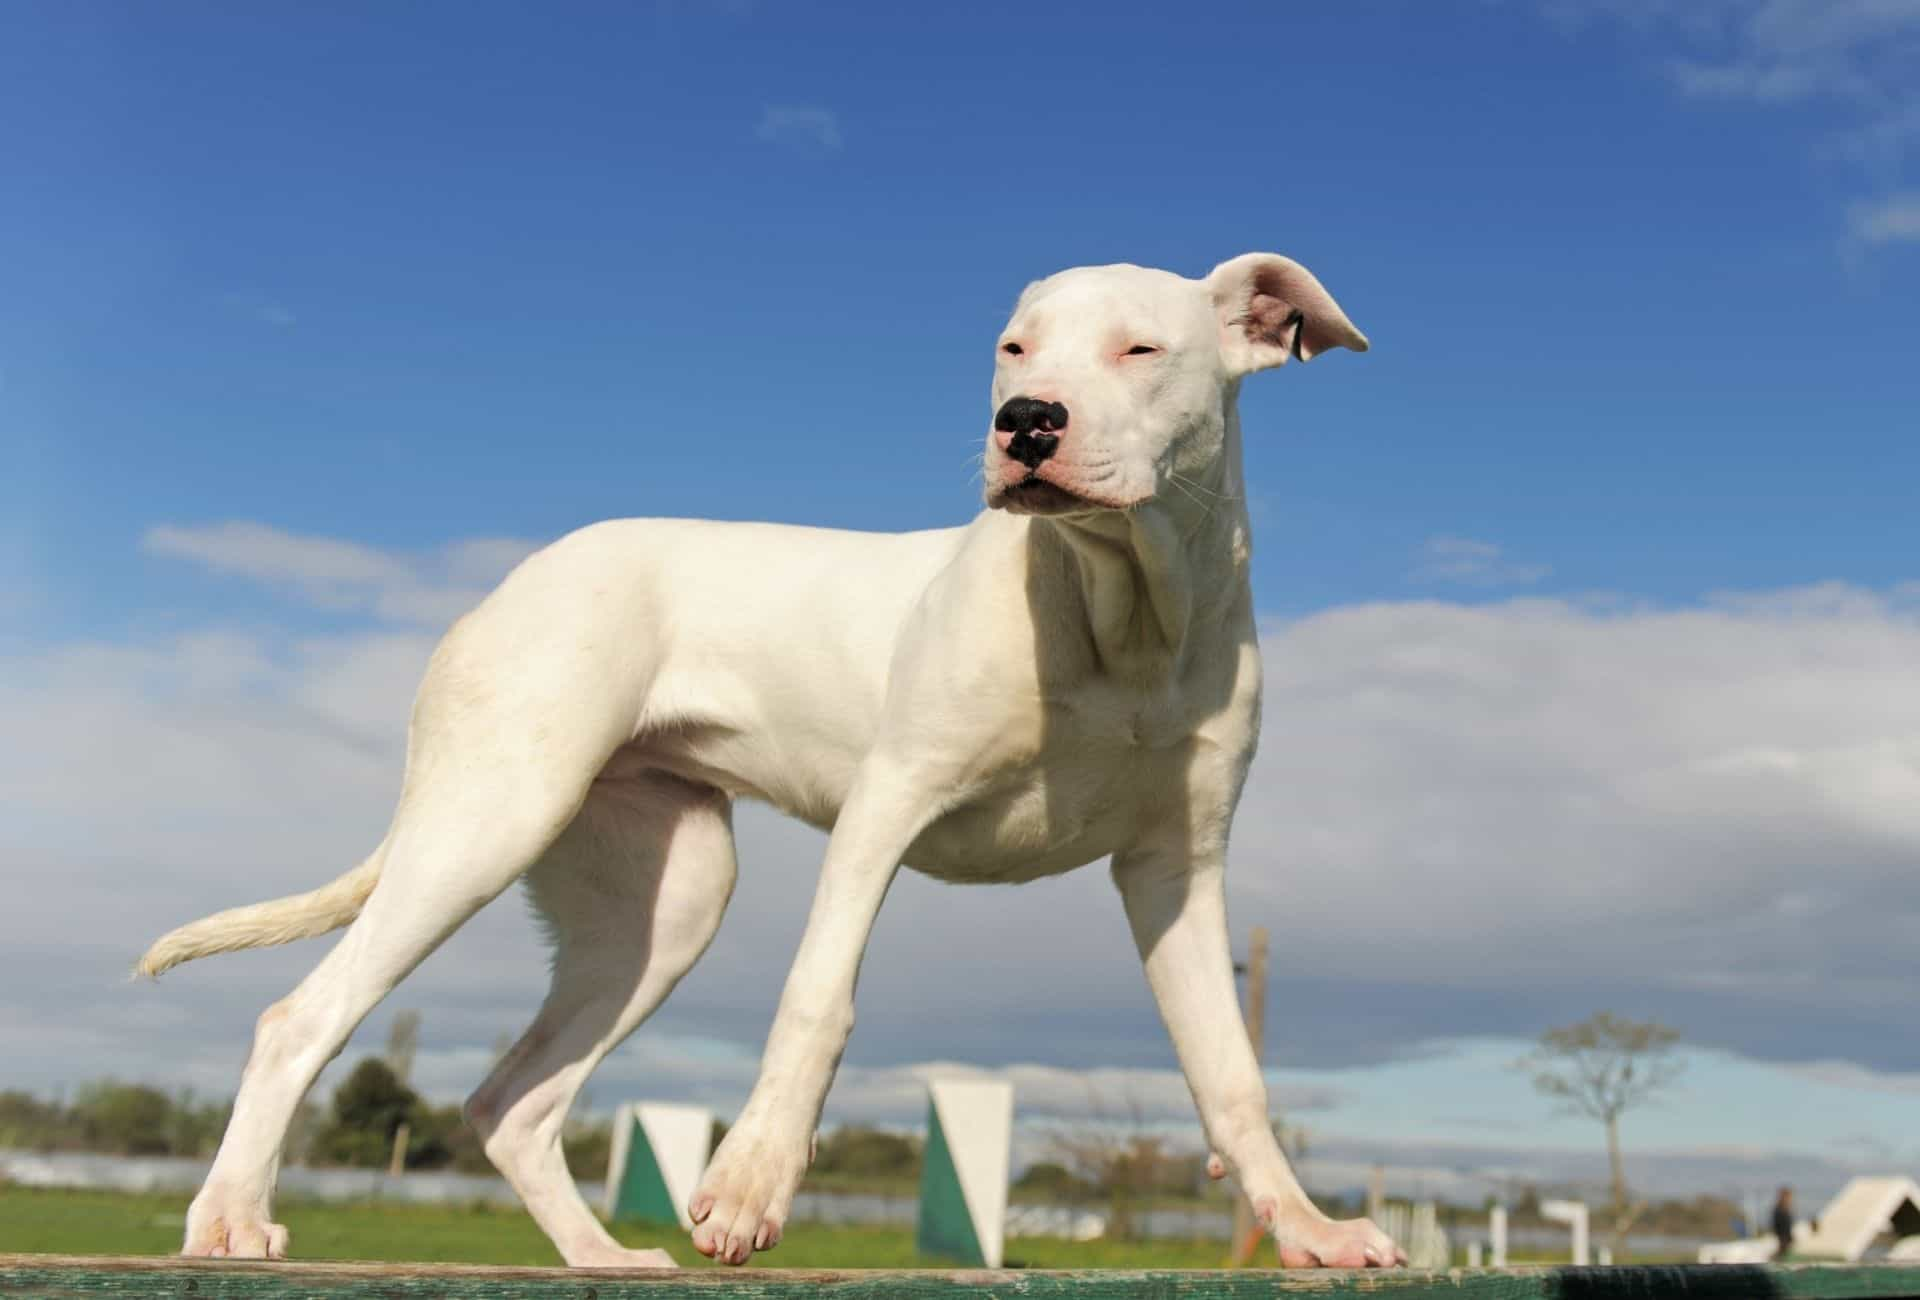 White Dogo Argentino in daylight standing on grass and squinting at the sunlight.